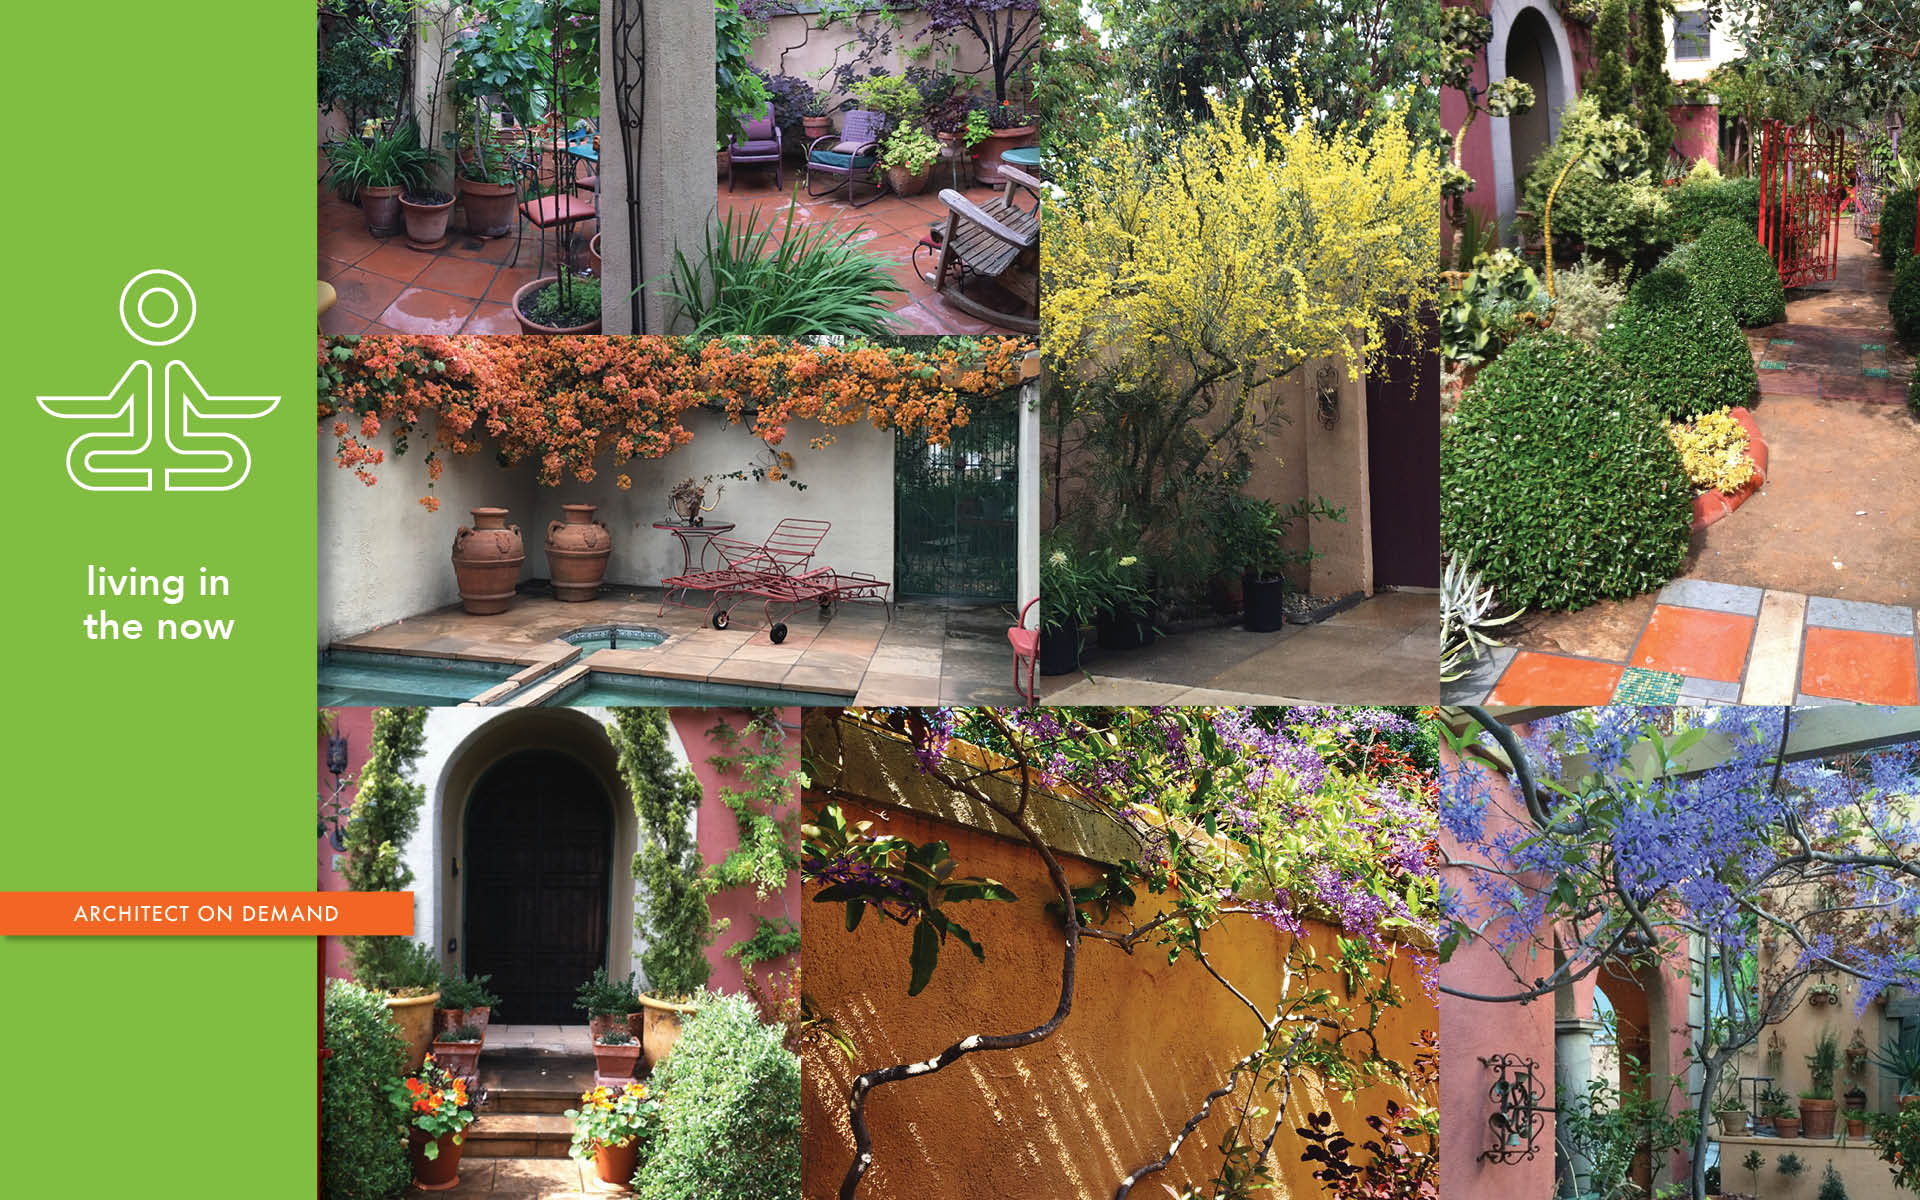 garden, Cheryl Lerner, architect on demand, advice without strings